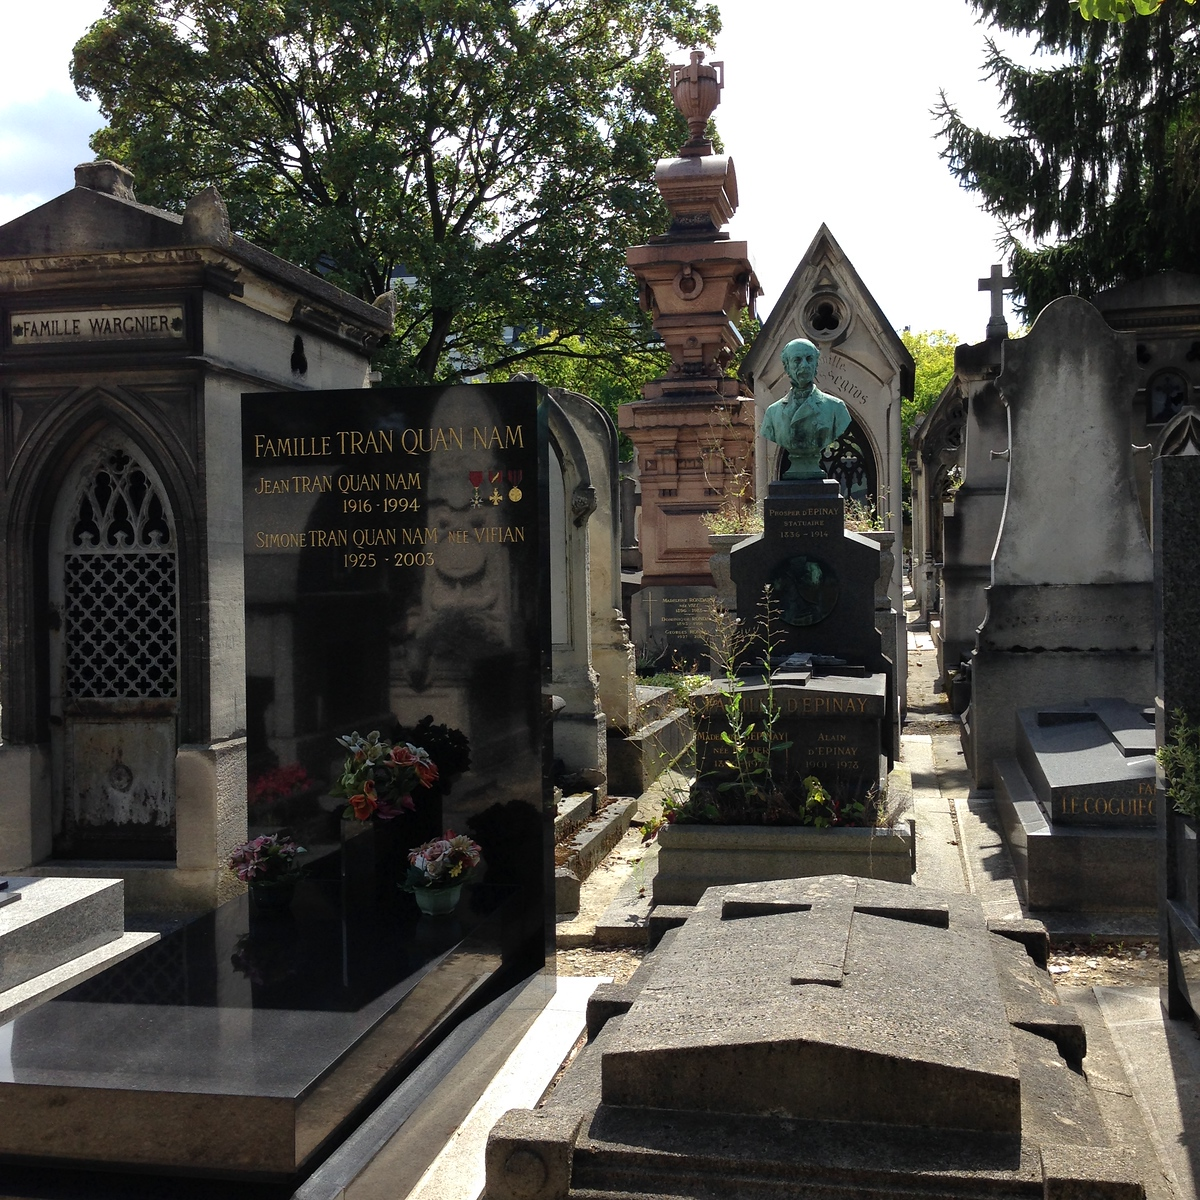 Ornate Tombstones and Family Plots in the Montparnasse Cemetary in Paris, France